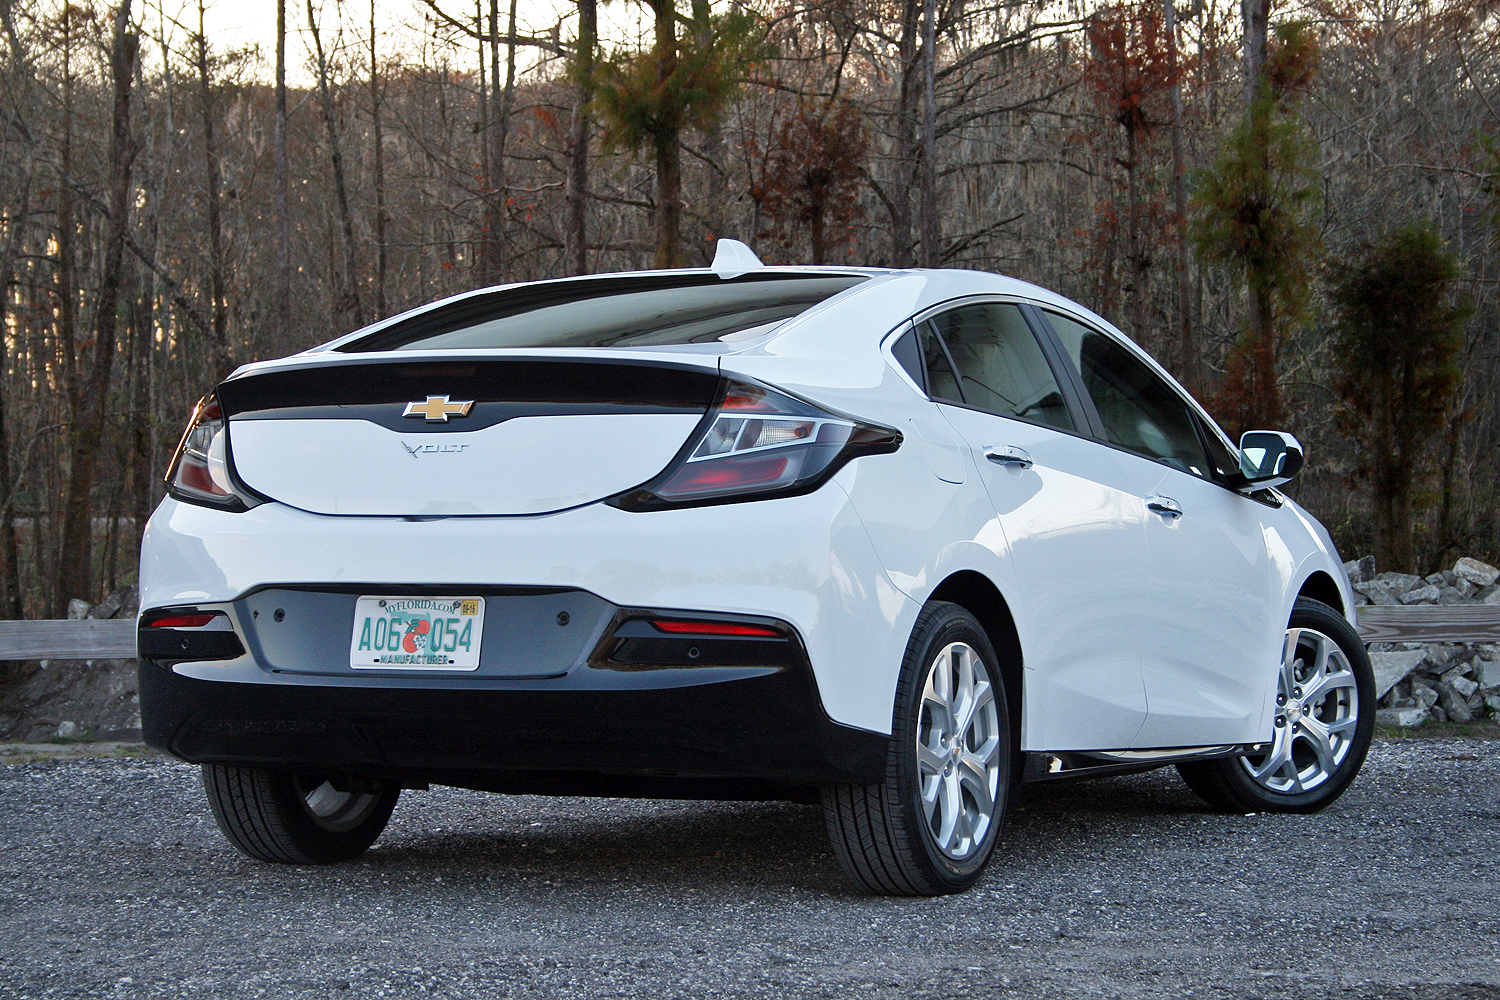 All Chevy chevy 2016 volt : 2016 Chevrolet Volt – Driven Review - Top Speed